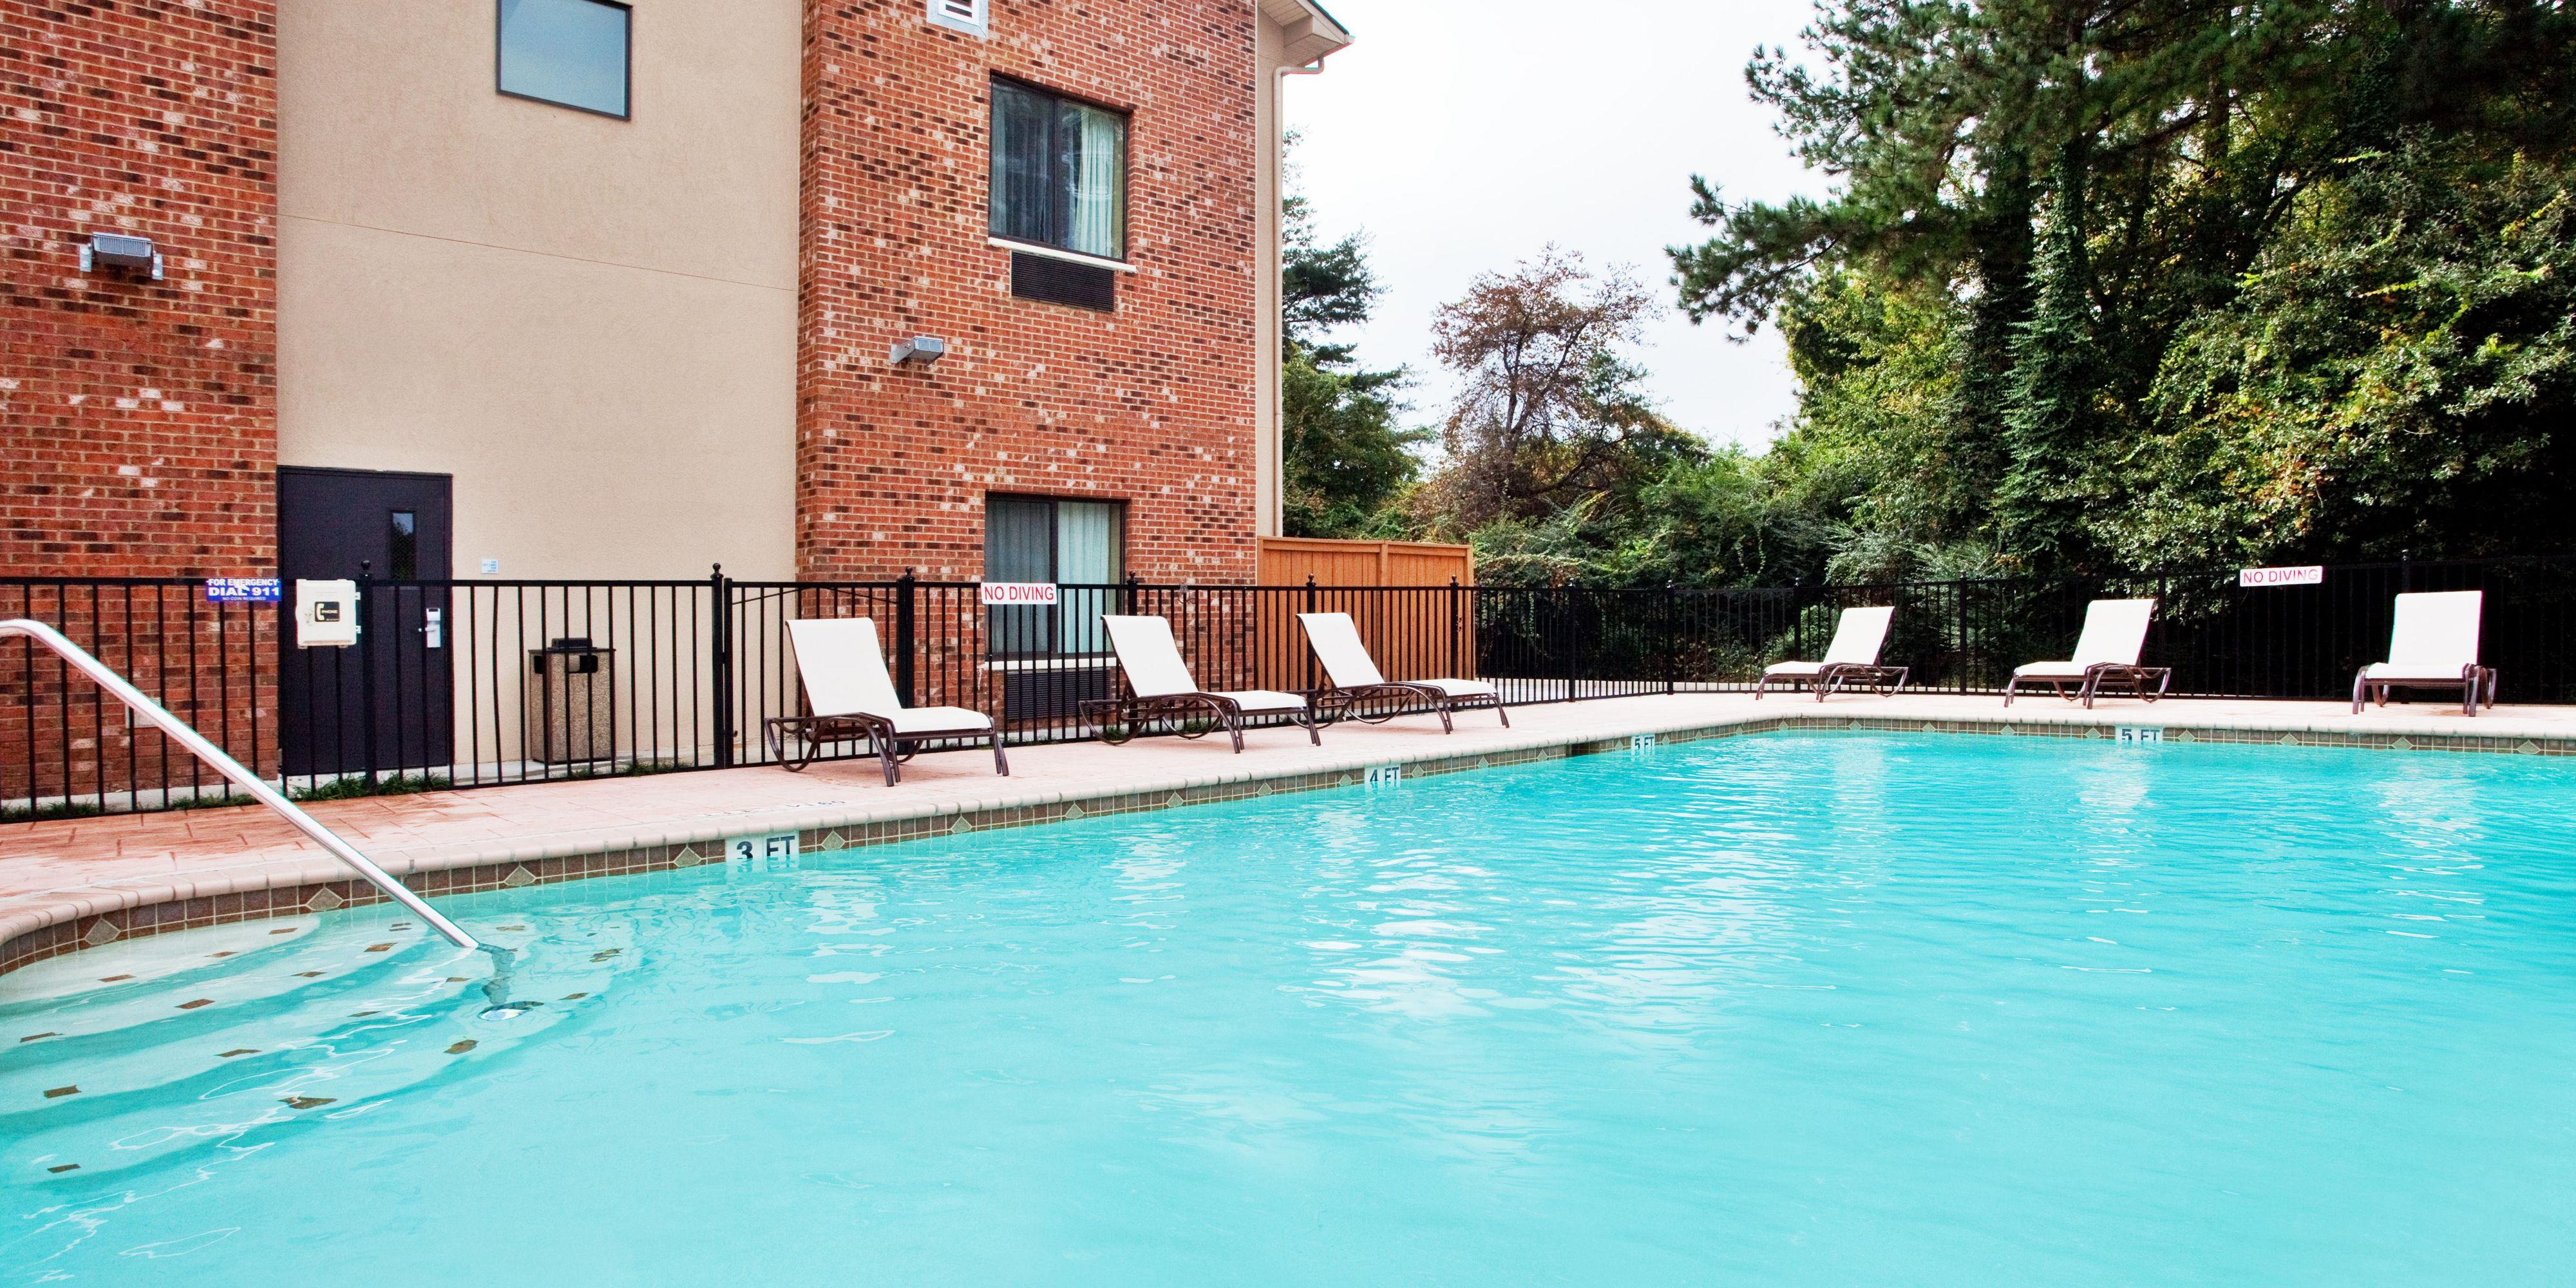 holiday-inn-express-and-suites-buford-2533129616-2x1